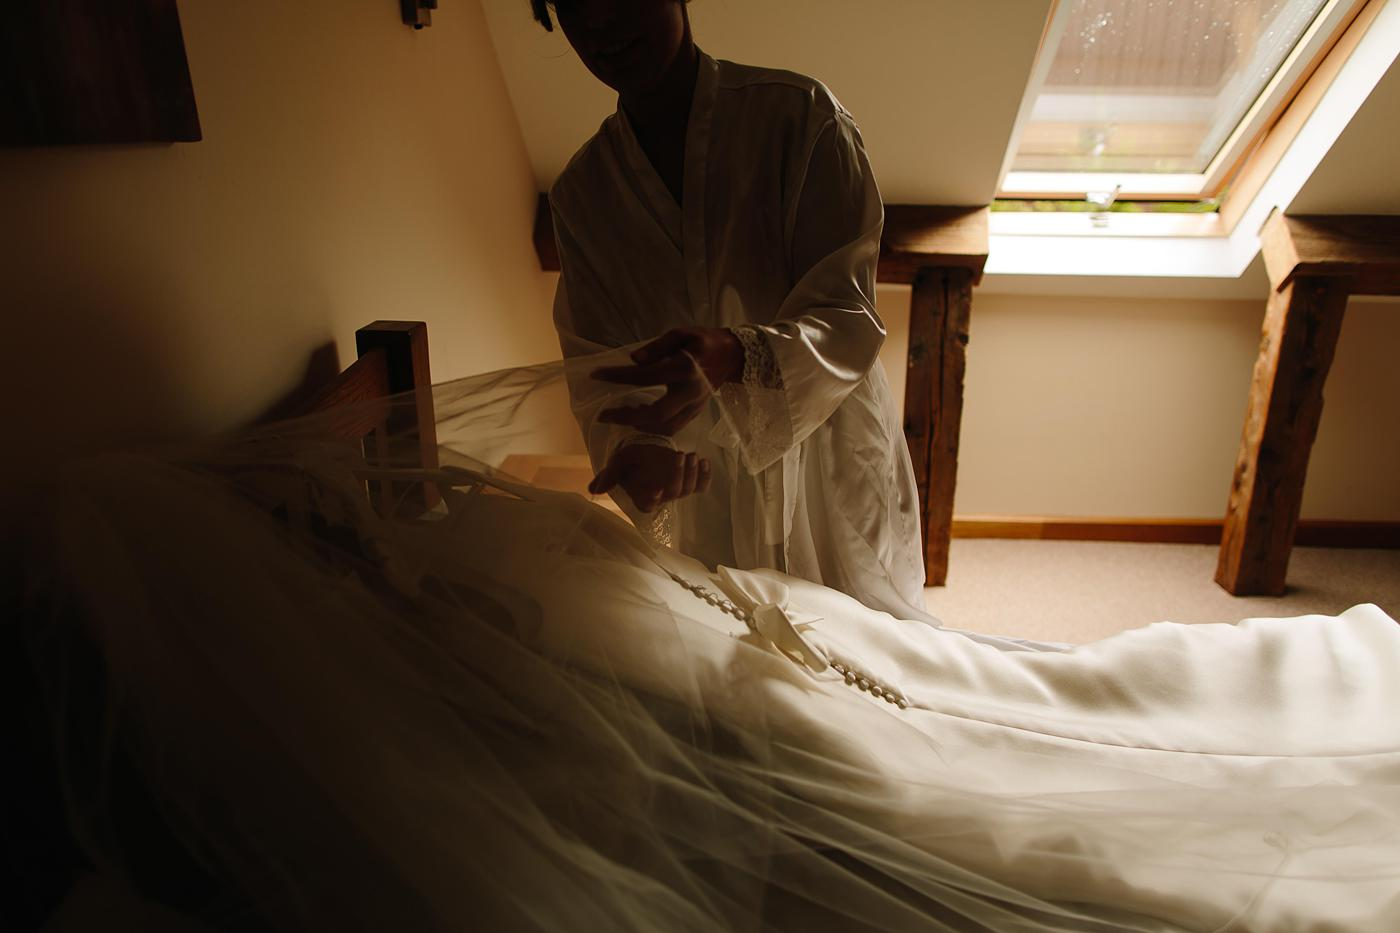 a wedding dress being arranged by the bride